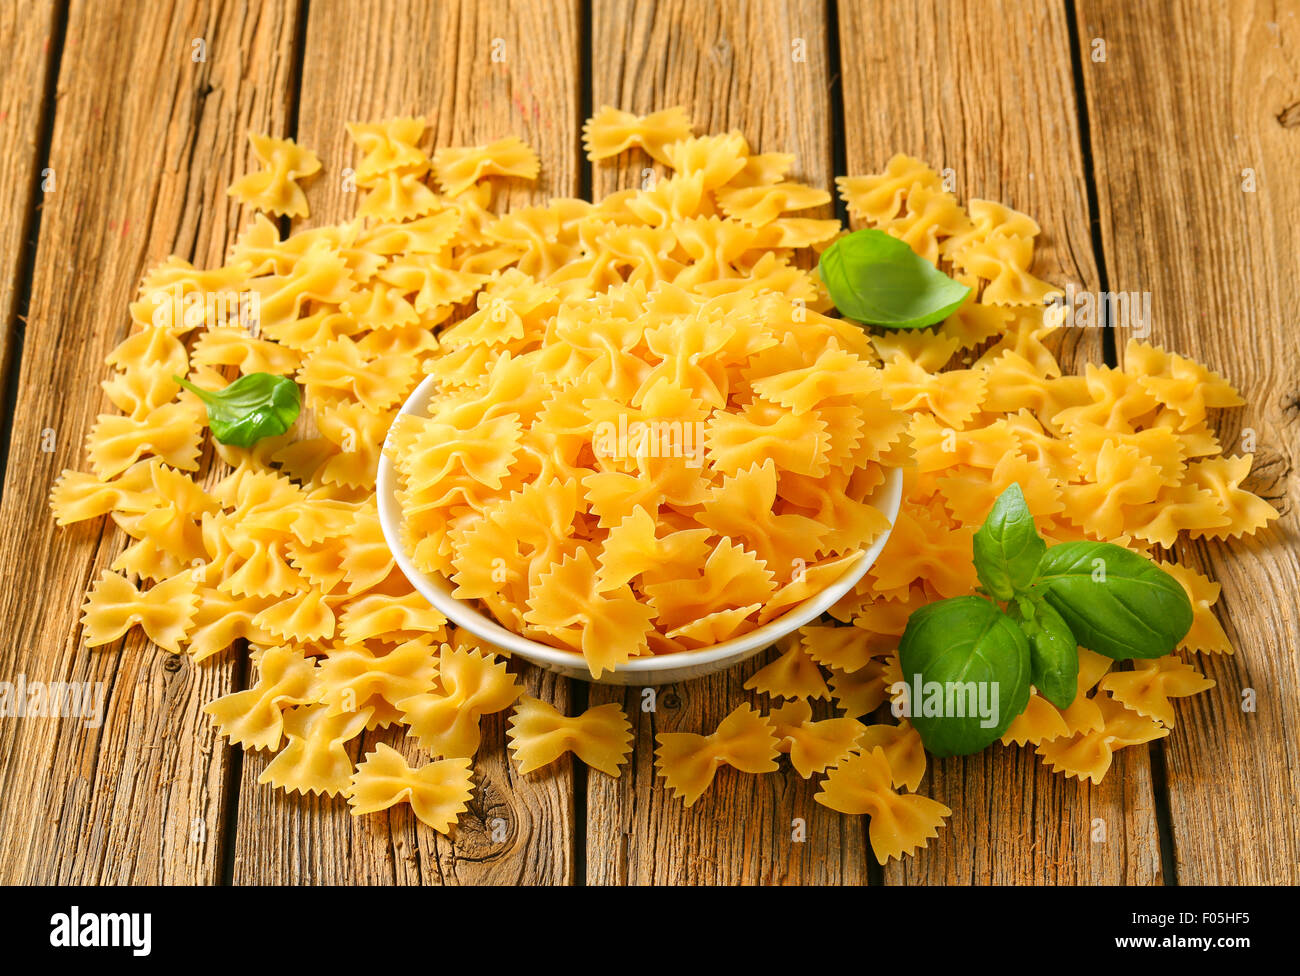 Bowl of uncooked bow tie pasta - Stock Image